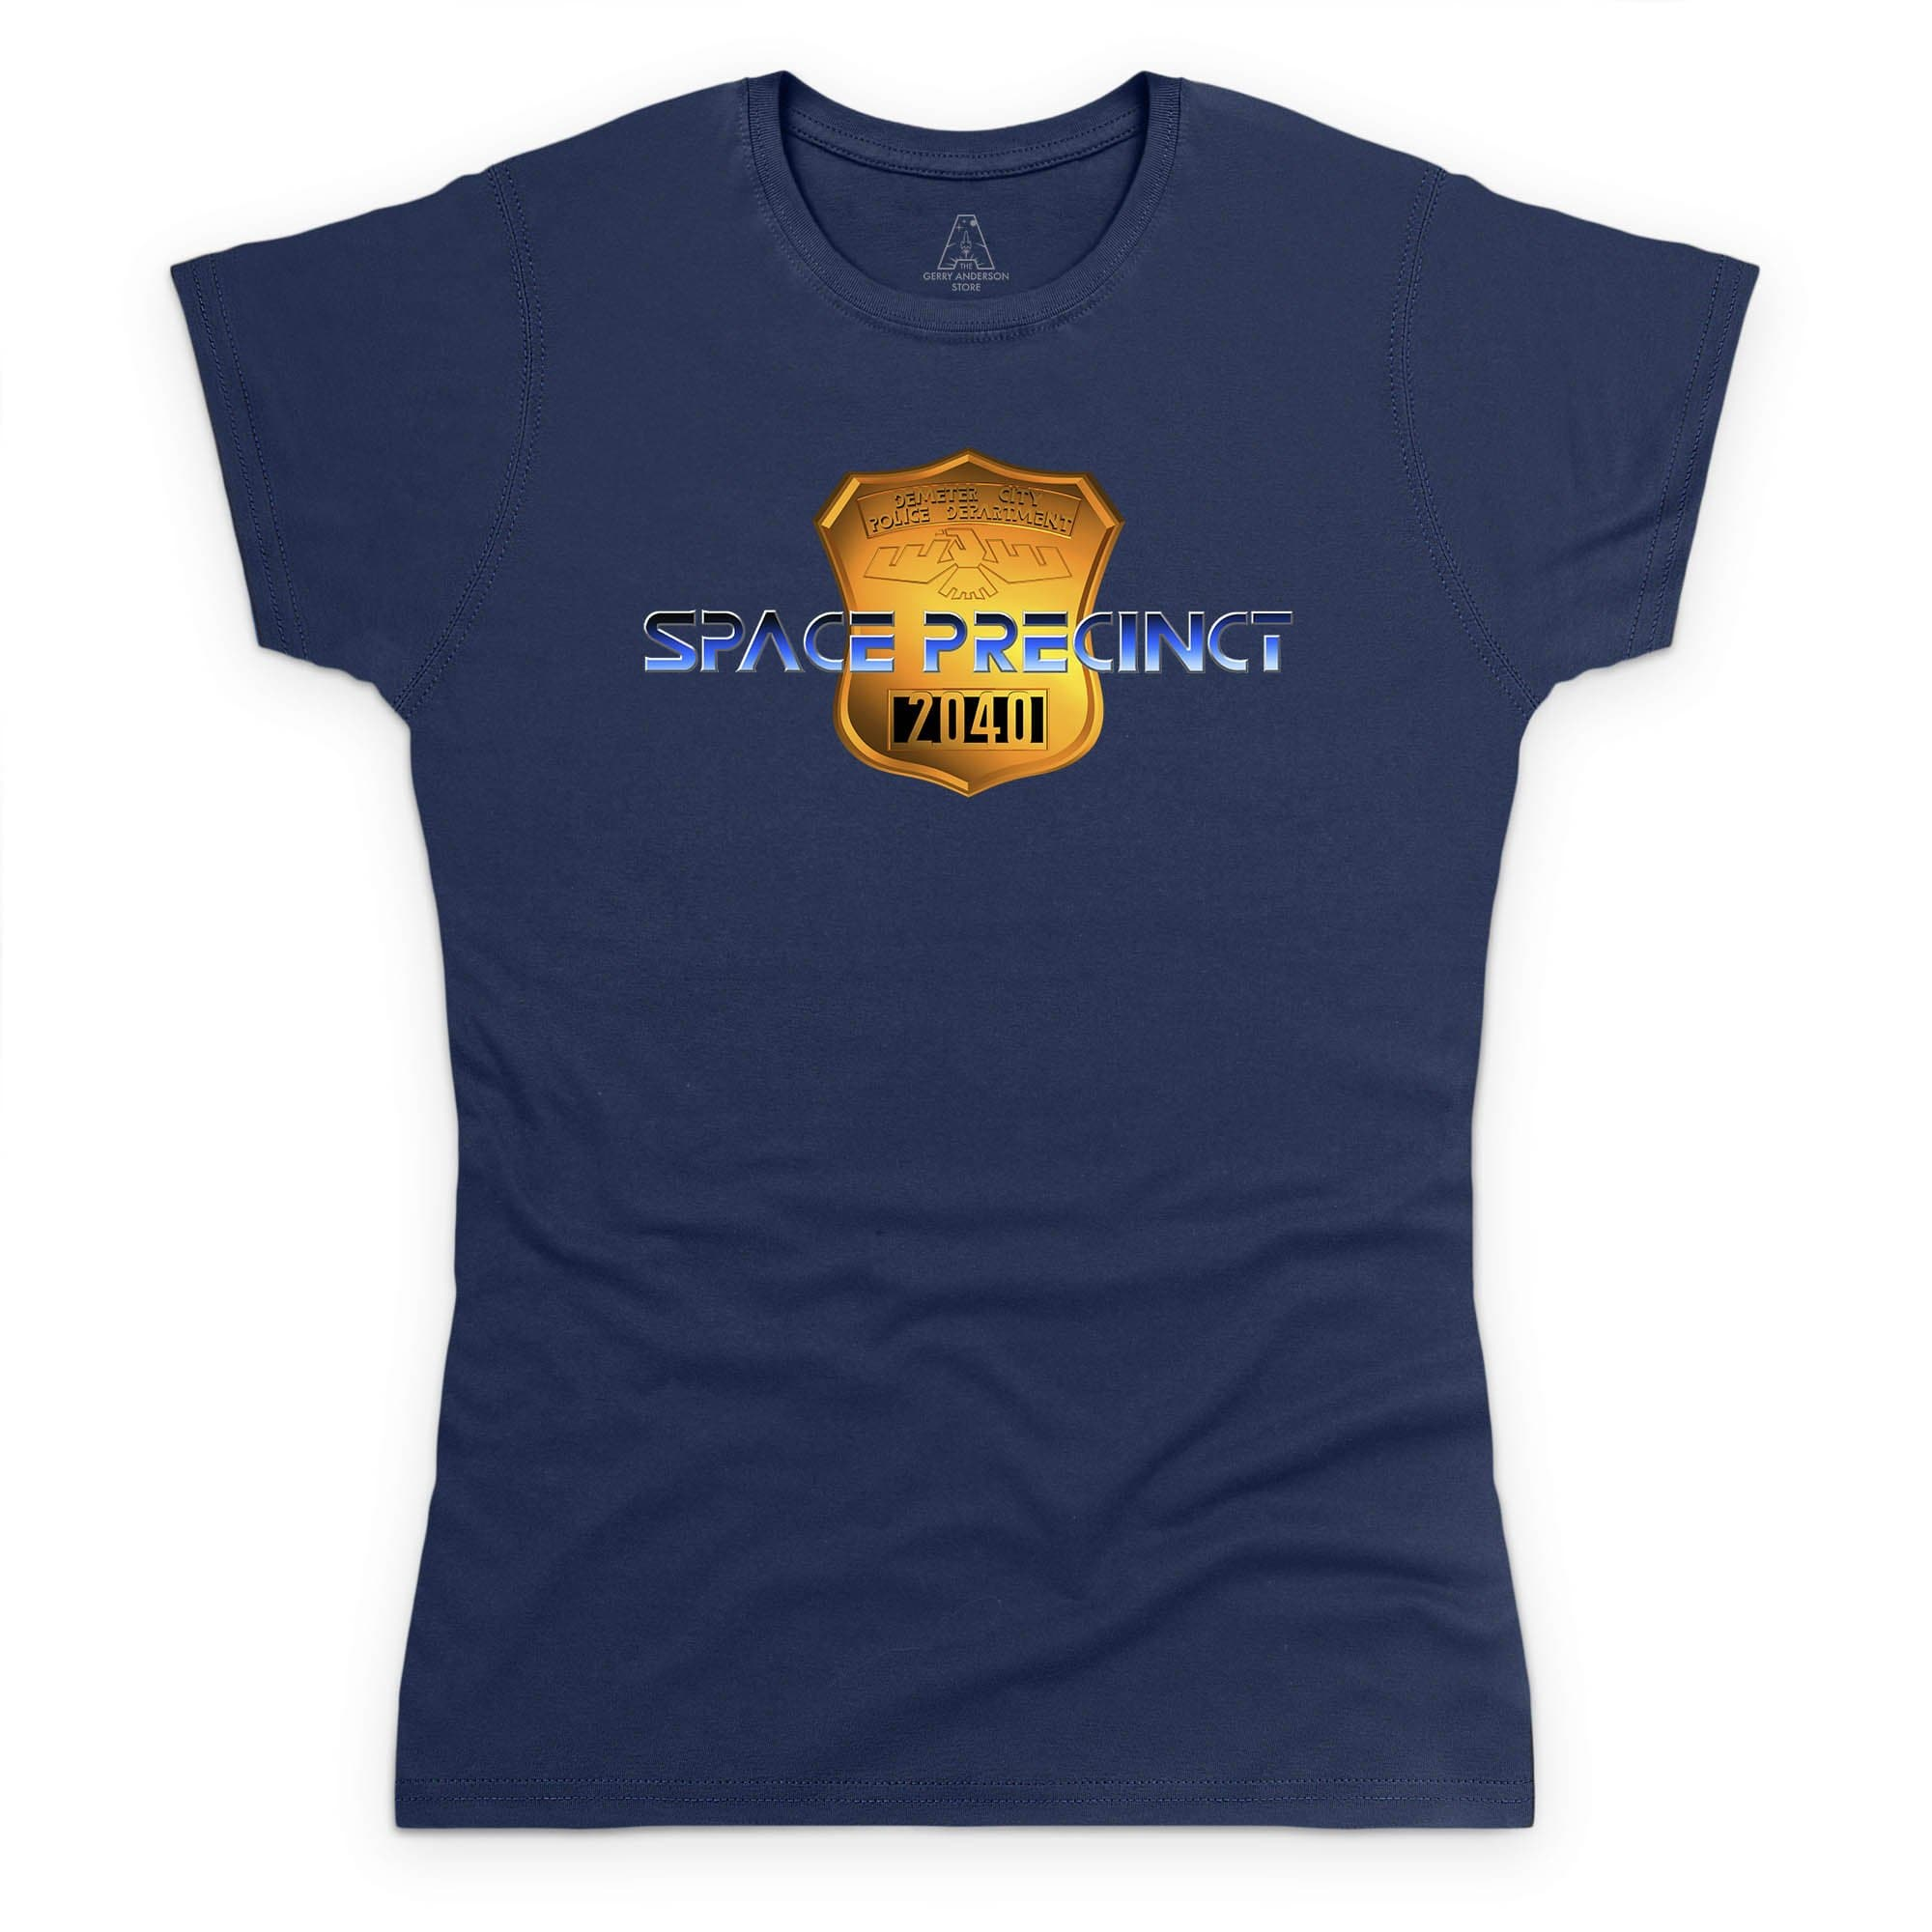 Space Precinct Logo Women's T-Shirt [Official & Exclusive] - The Gerry Anderson Store